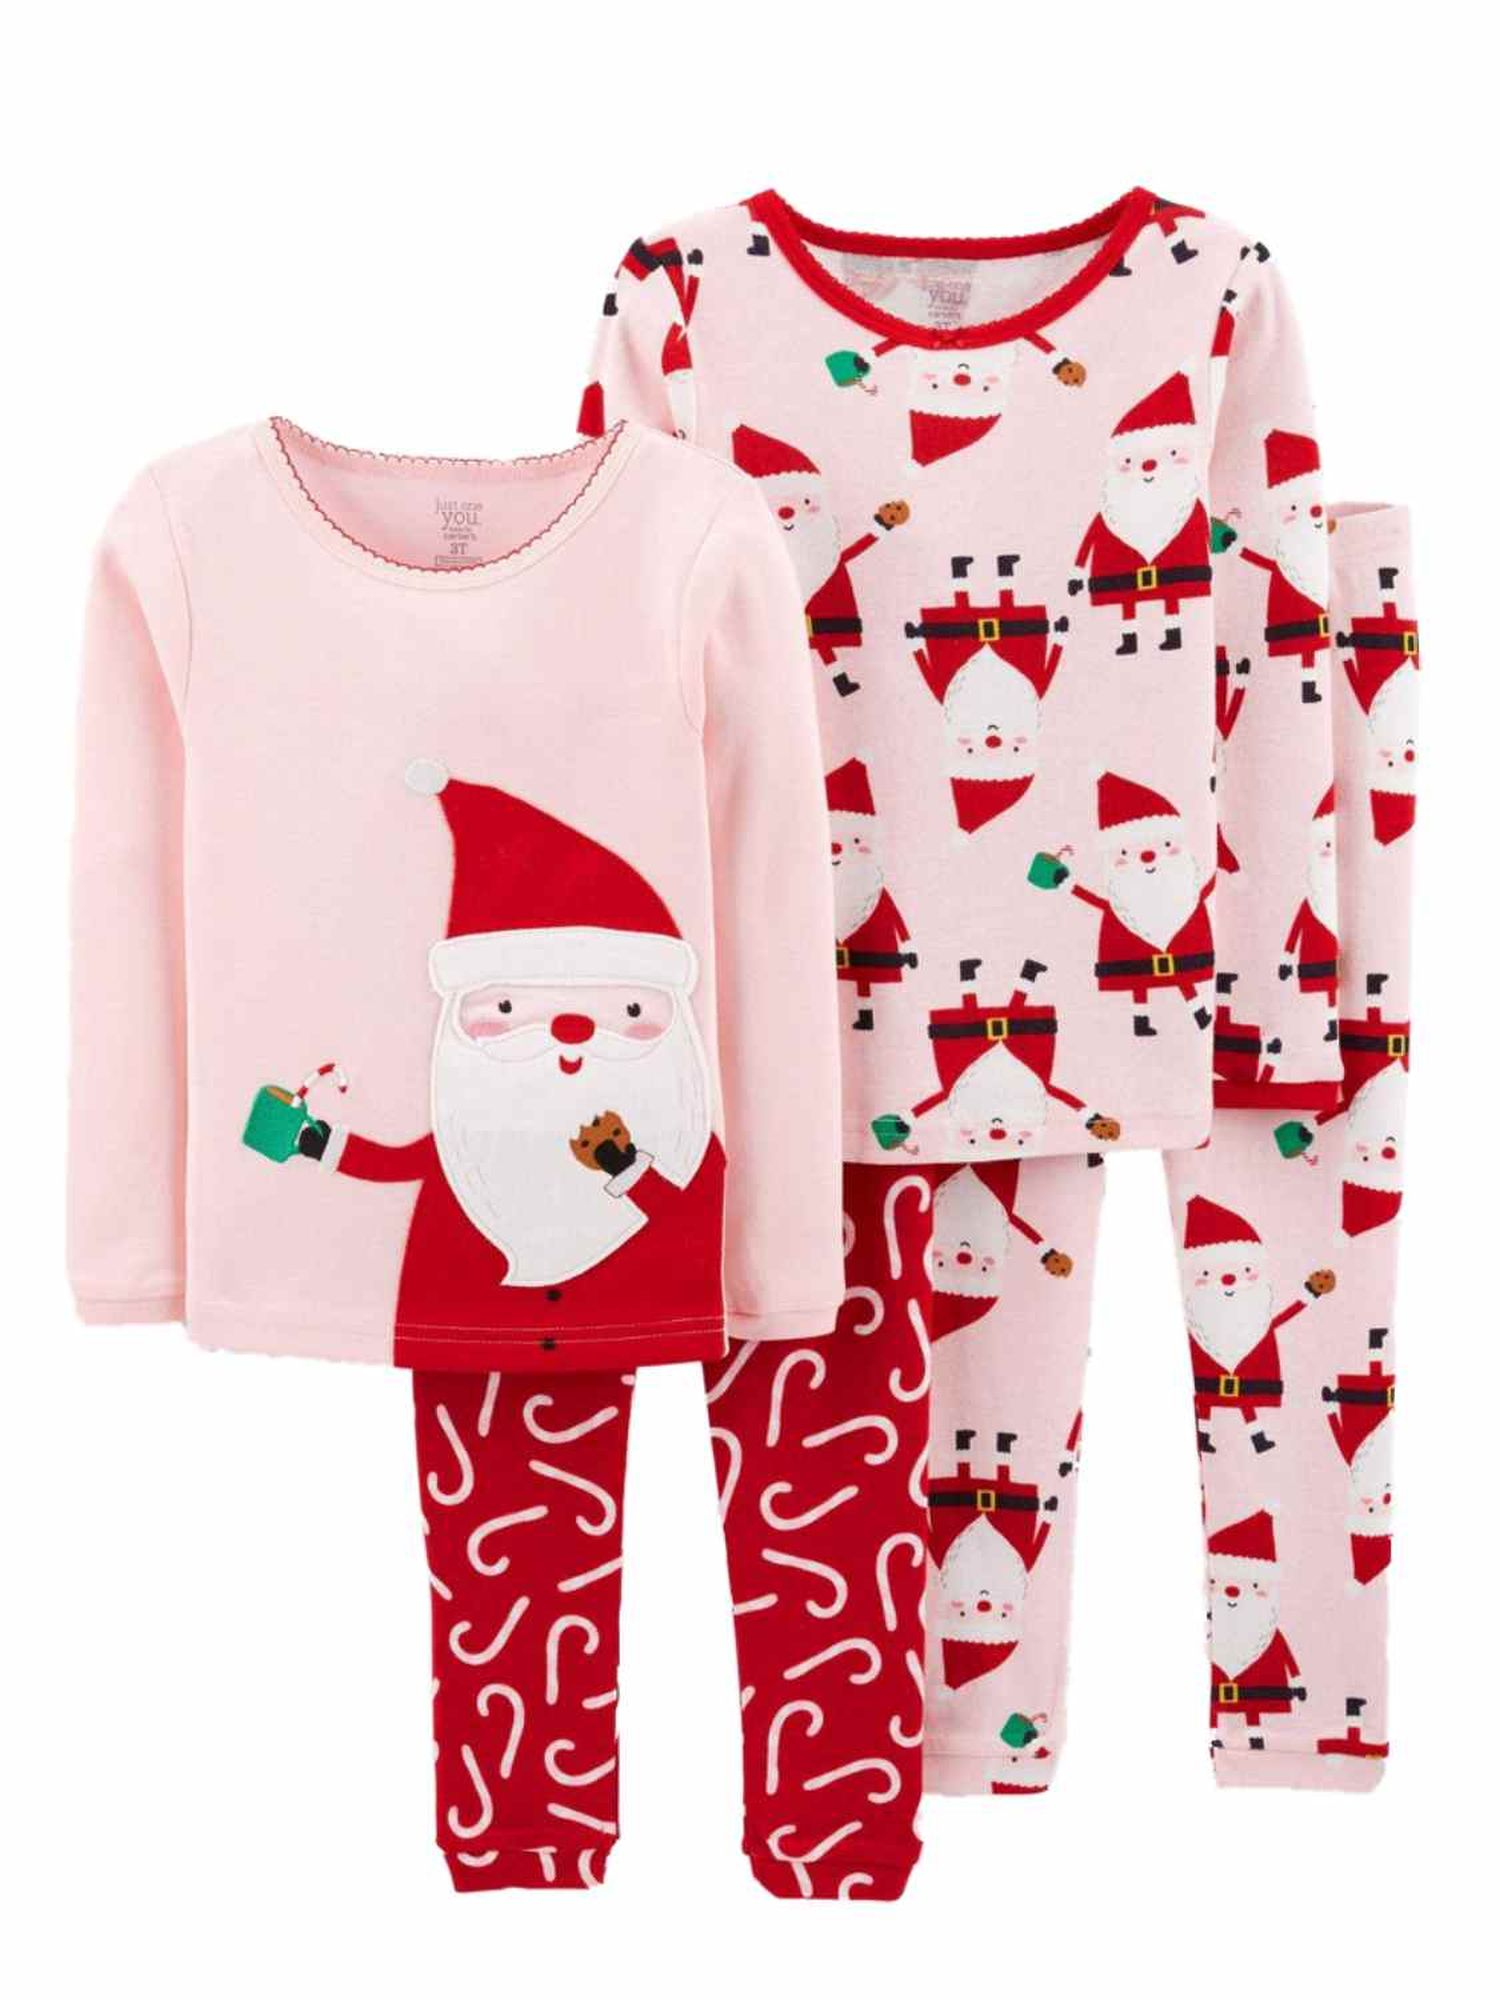 Carter's Just One You Toddler Girl Pink Christmas Santa Claus Pajamas 18 mths 3T